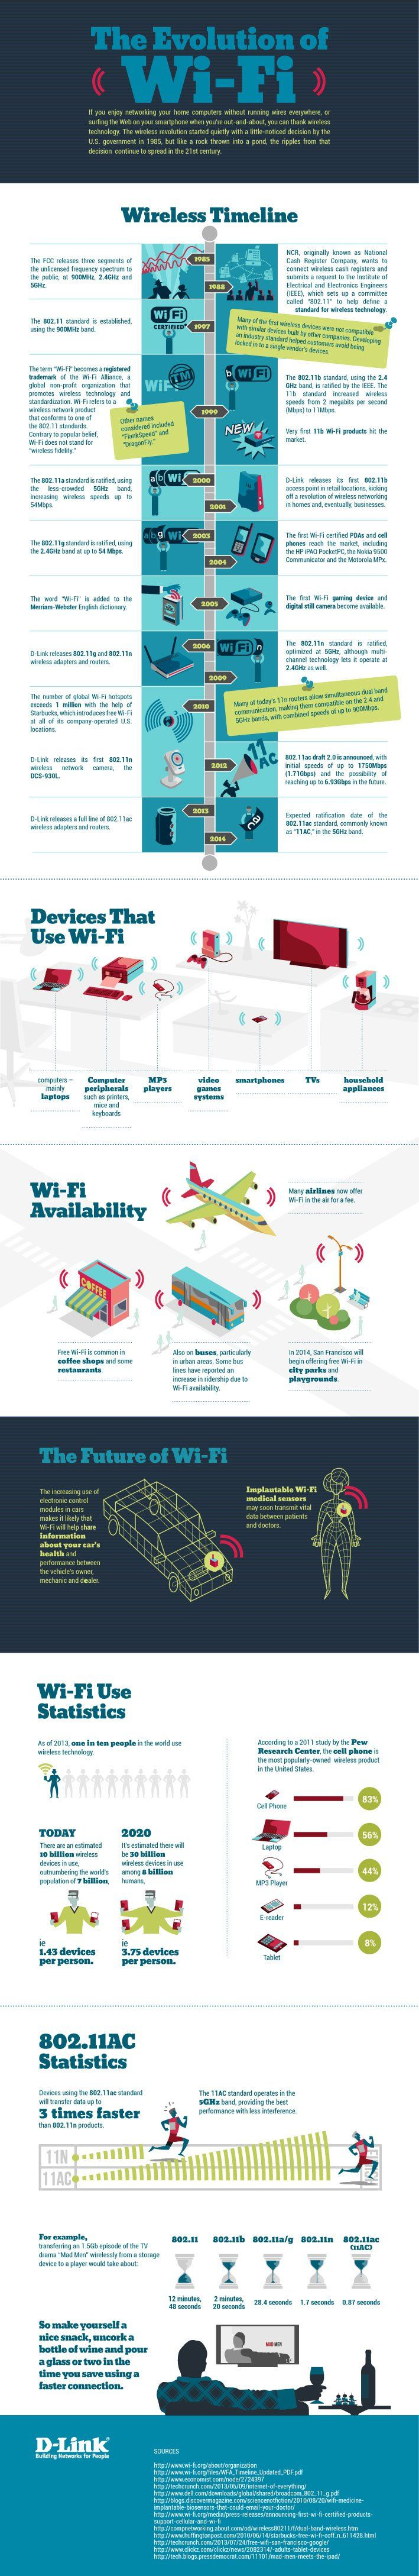 The Evolution of Wi-Fi